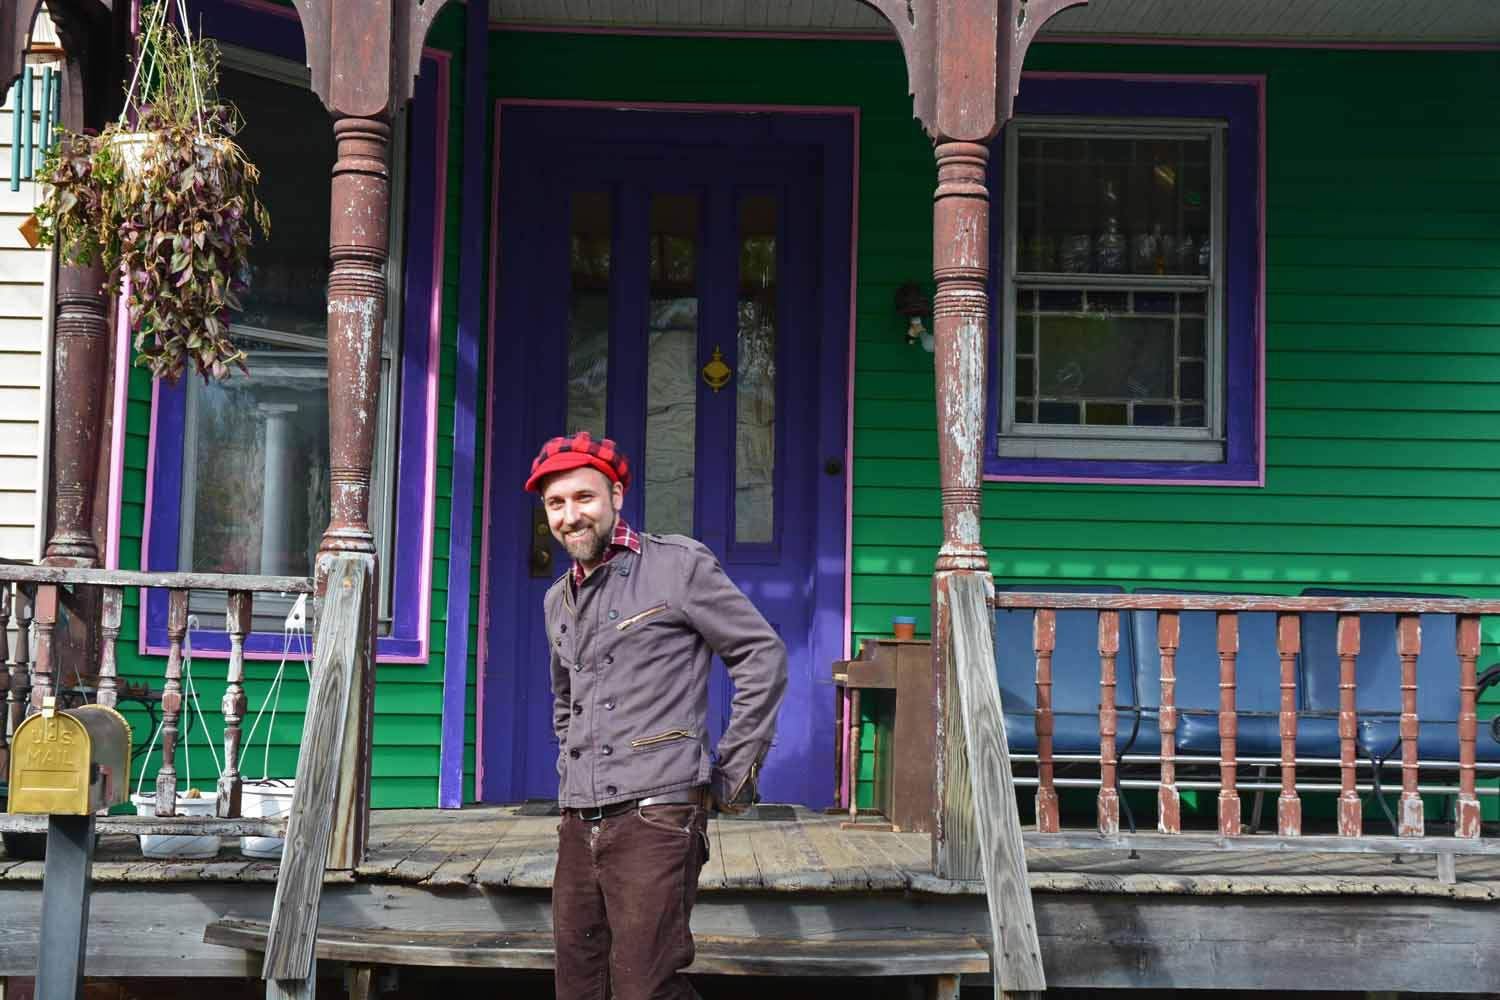 Mark in front of his Kingston hangout...yes those are Mark colors!